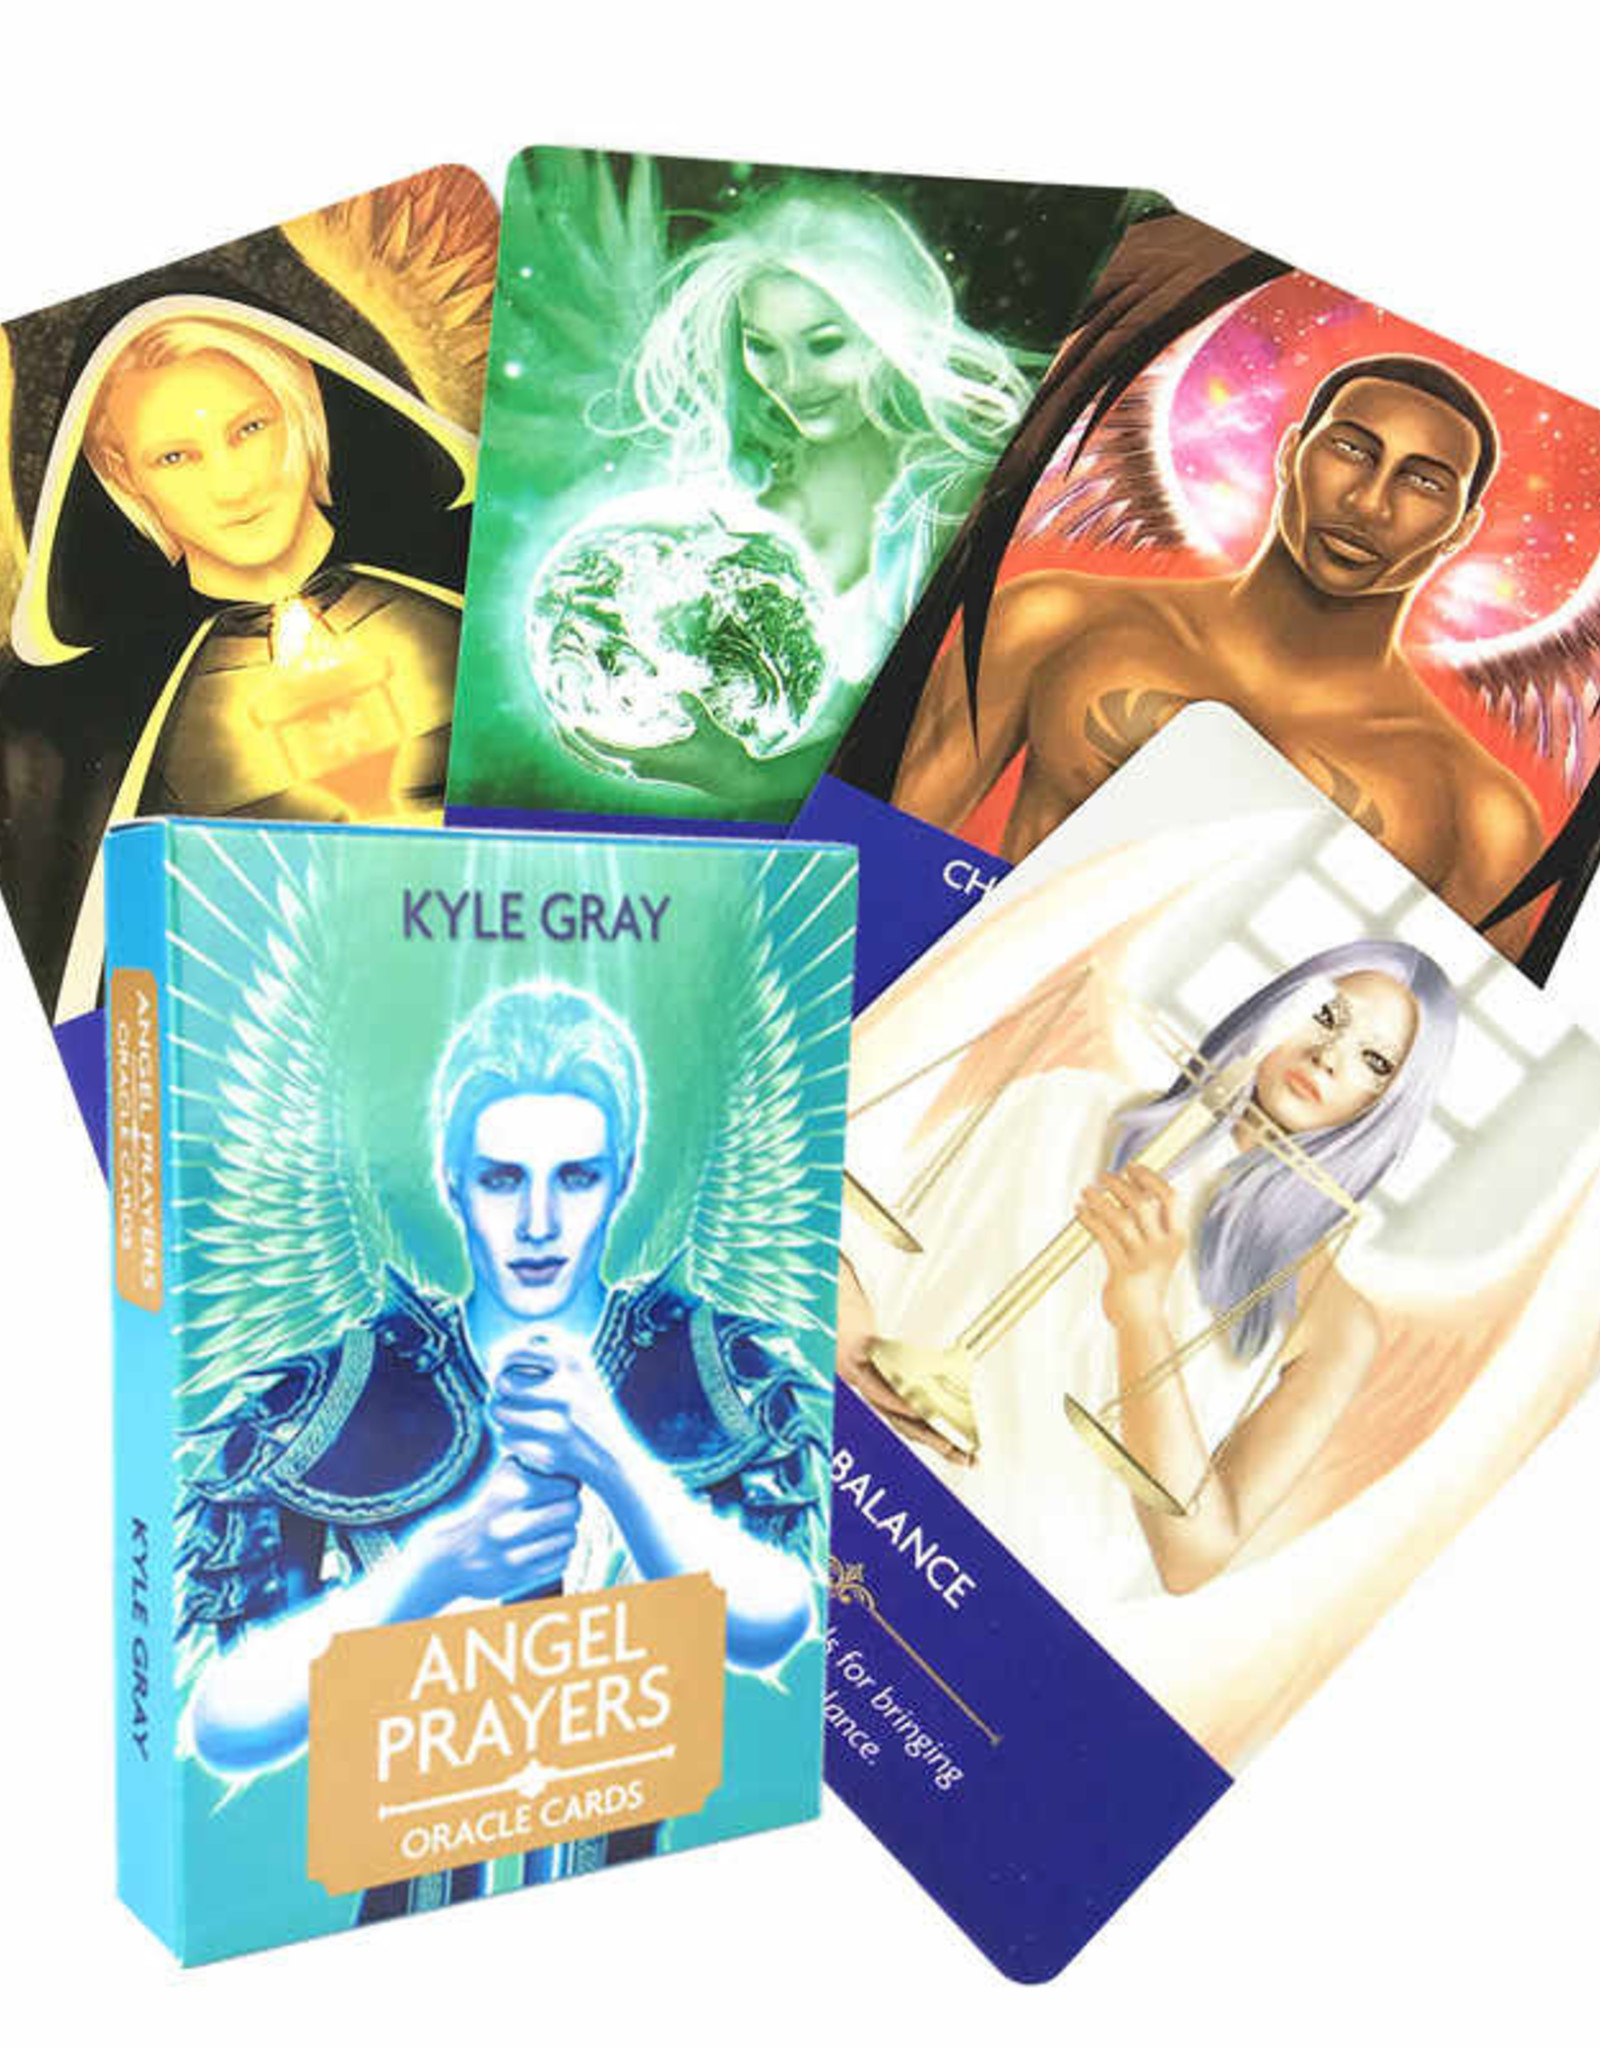 Kyle Gray Angel Prayers Oracle by Kyle Gray